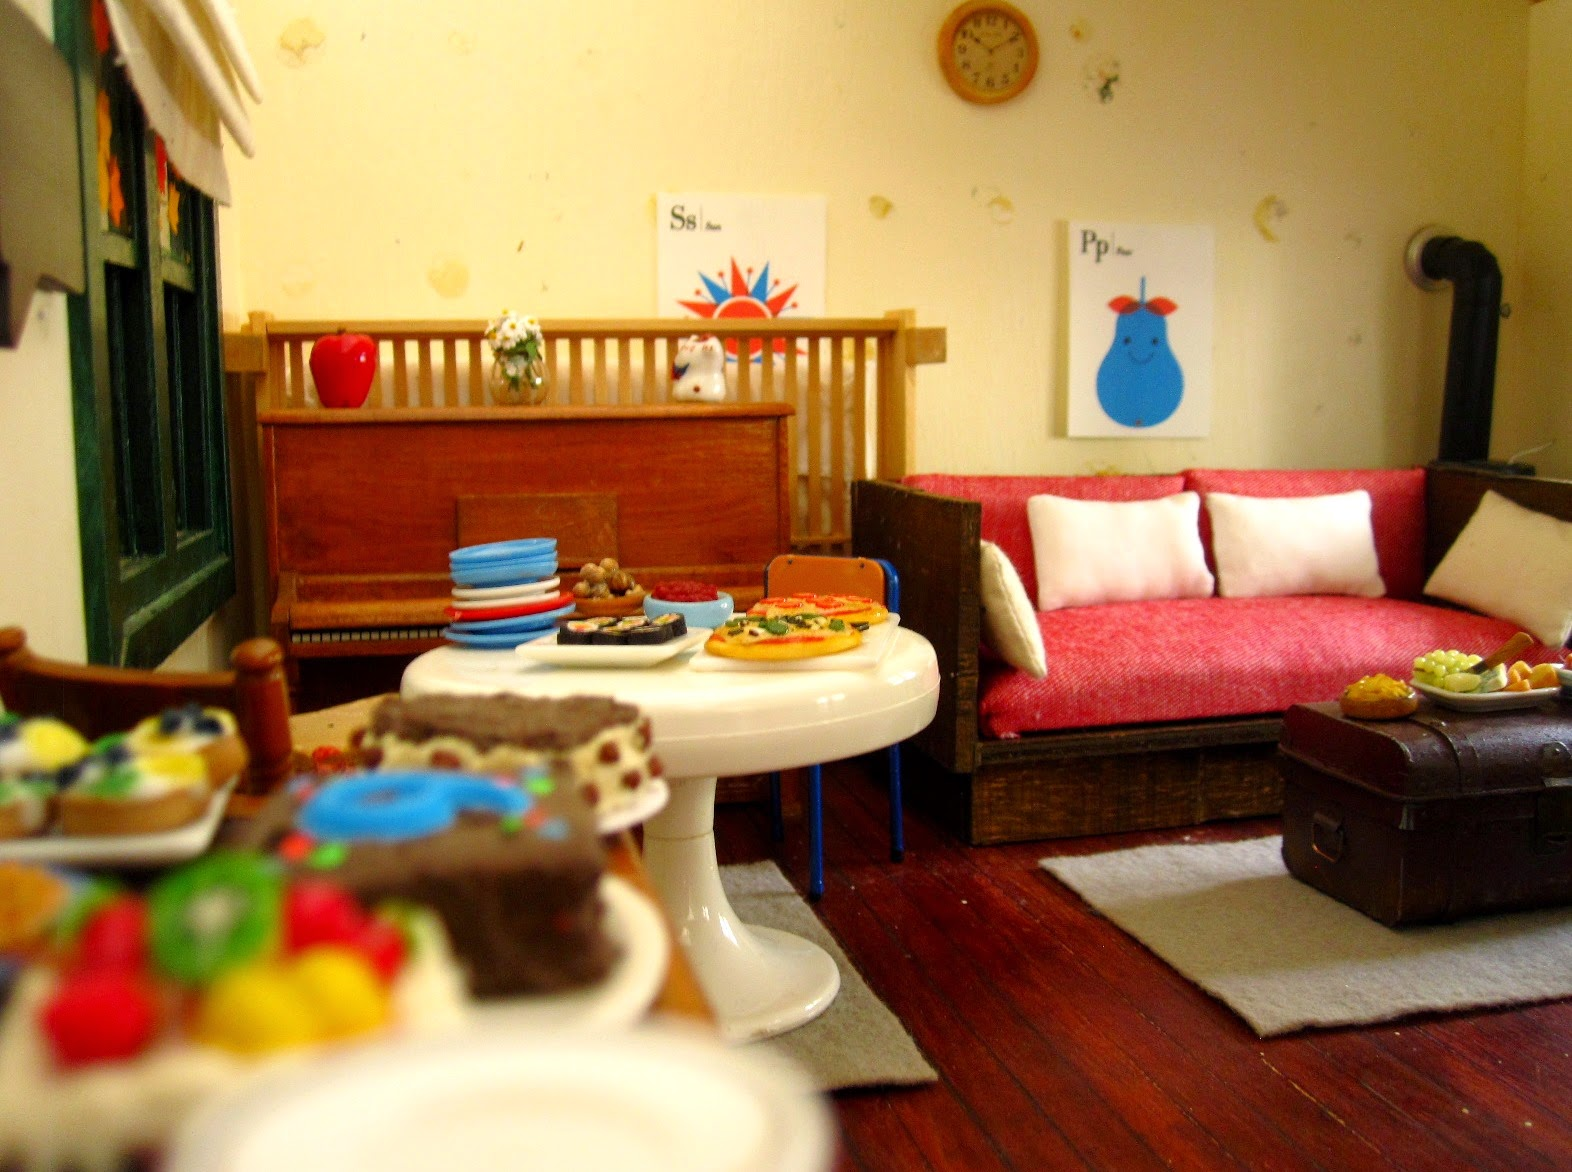 Selection of miniature dolls' house party food arranged in a living area, ready for a party.